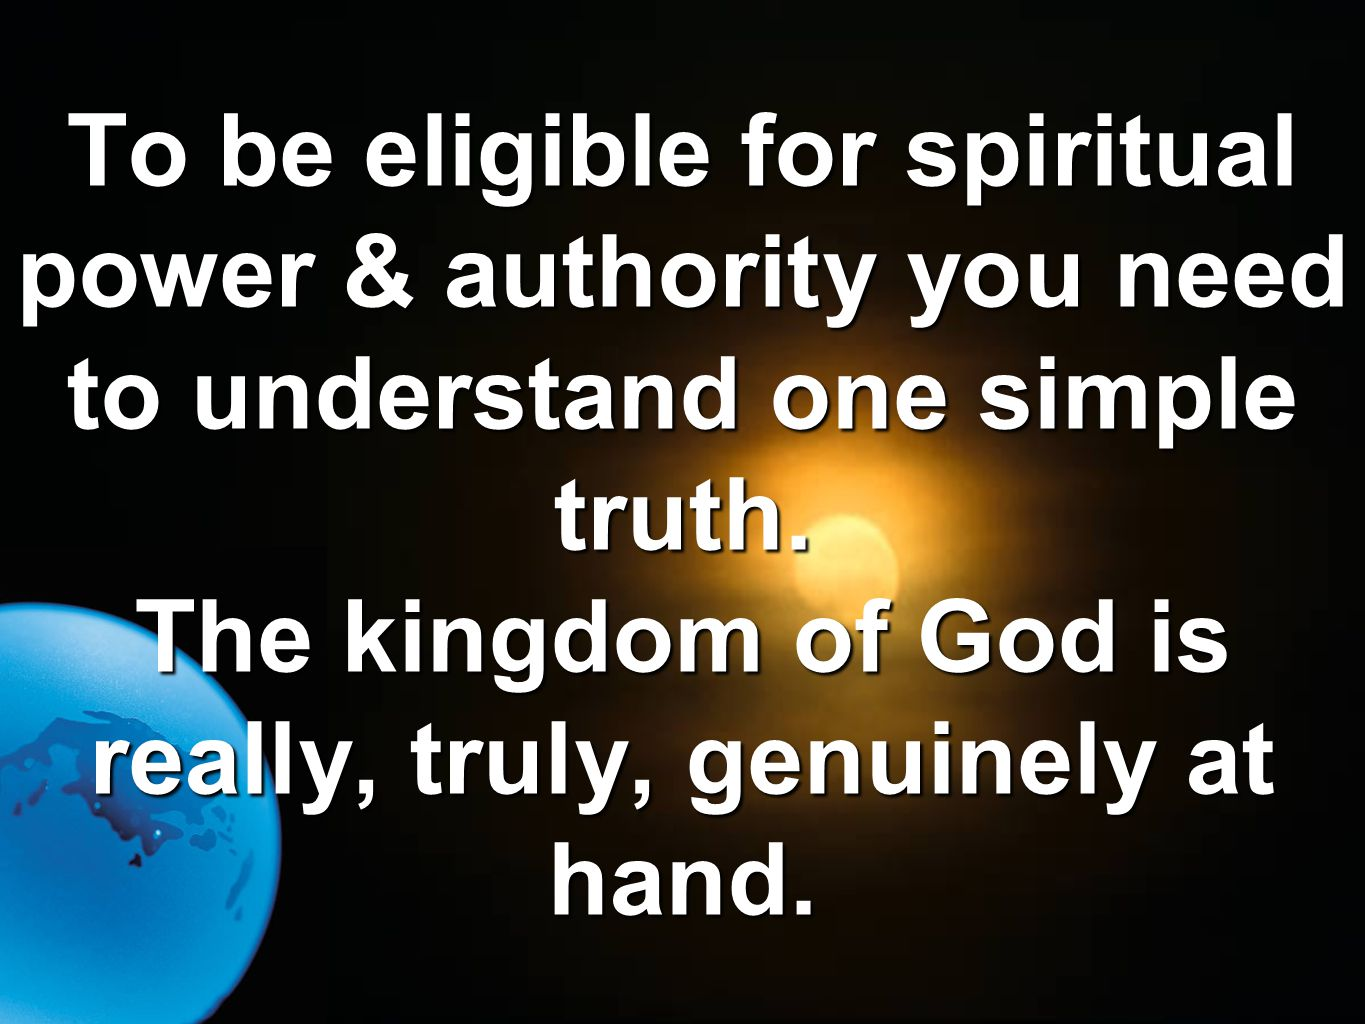 To be eligible for spiritual power & authority you need to understand one simple truth. The kingdom of God is really, truly, genuinely at hand.